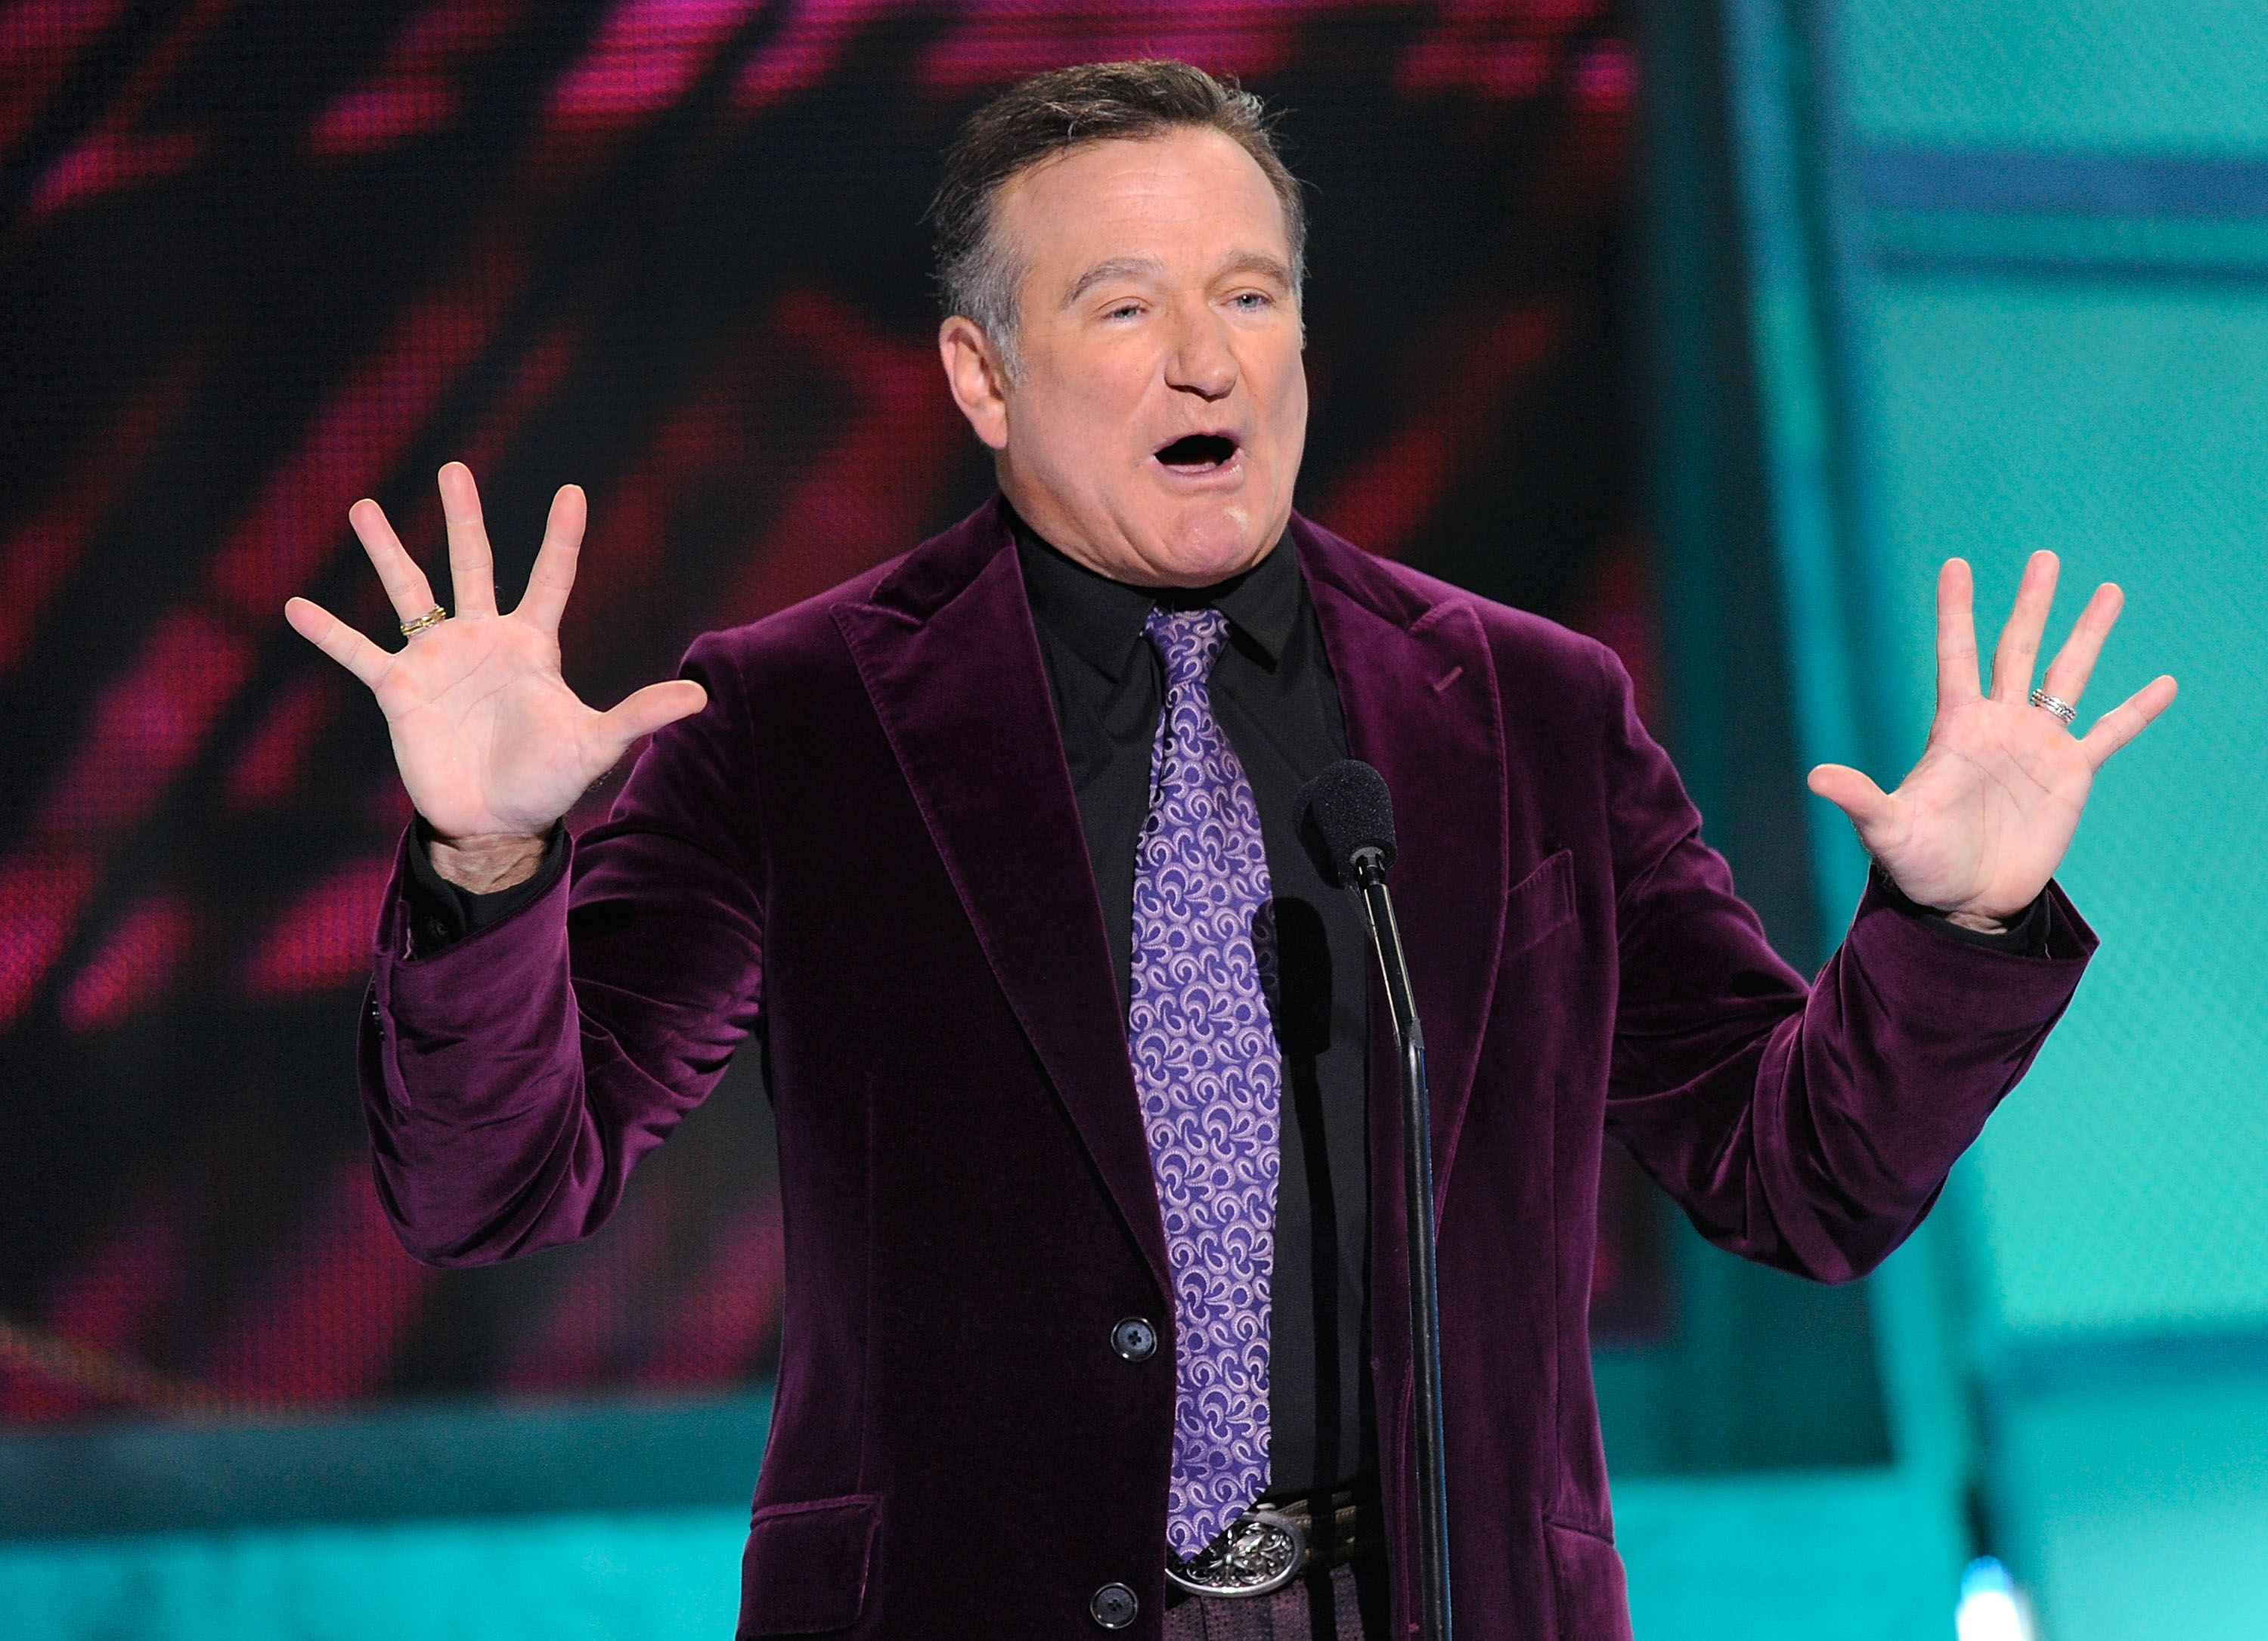 The late Robin Williams during the 35th Annual People's Choice Awards held at the Shrine Auditorium on January 7, 2009 in Los Angeles, California.   Photo: Getty Images